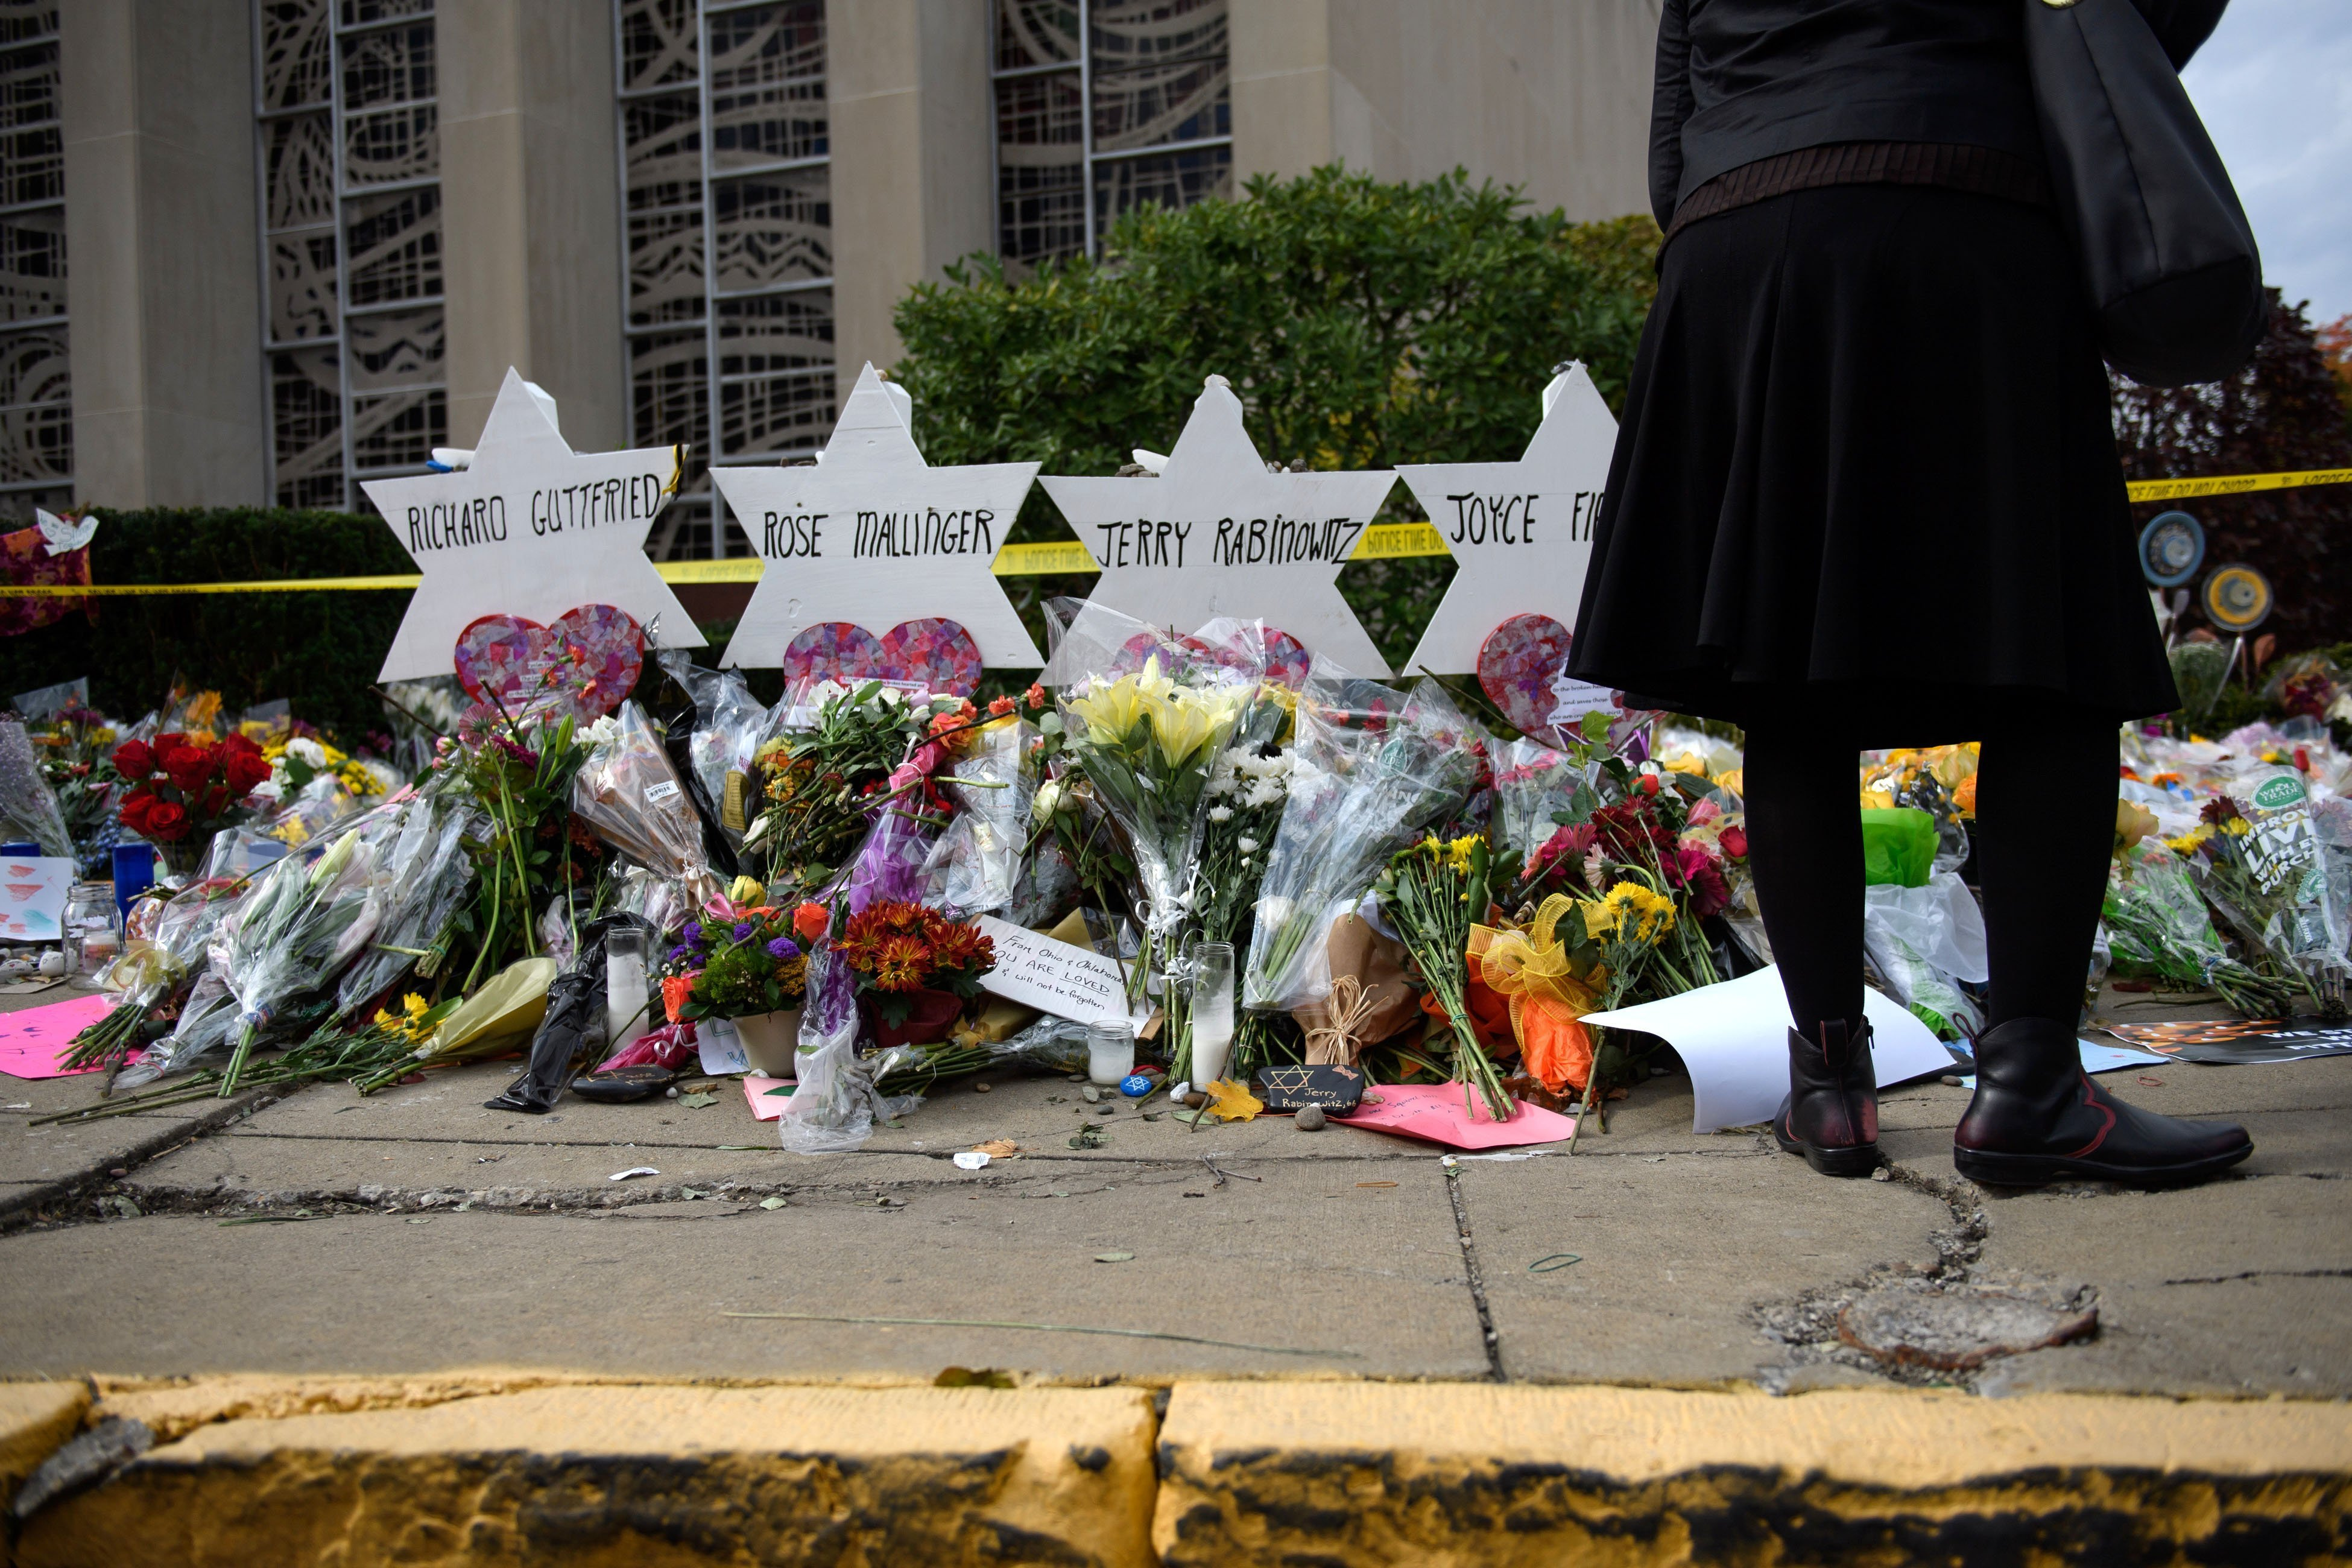 Flowers in memory of those who perished in the Pittsburgh shooting - Getty Images